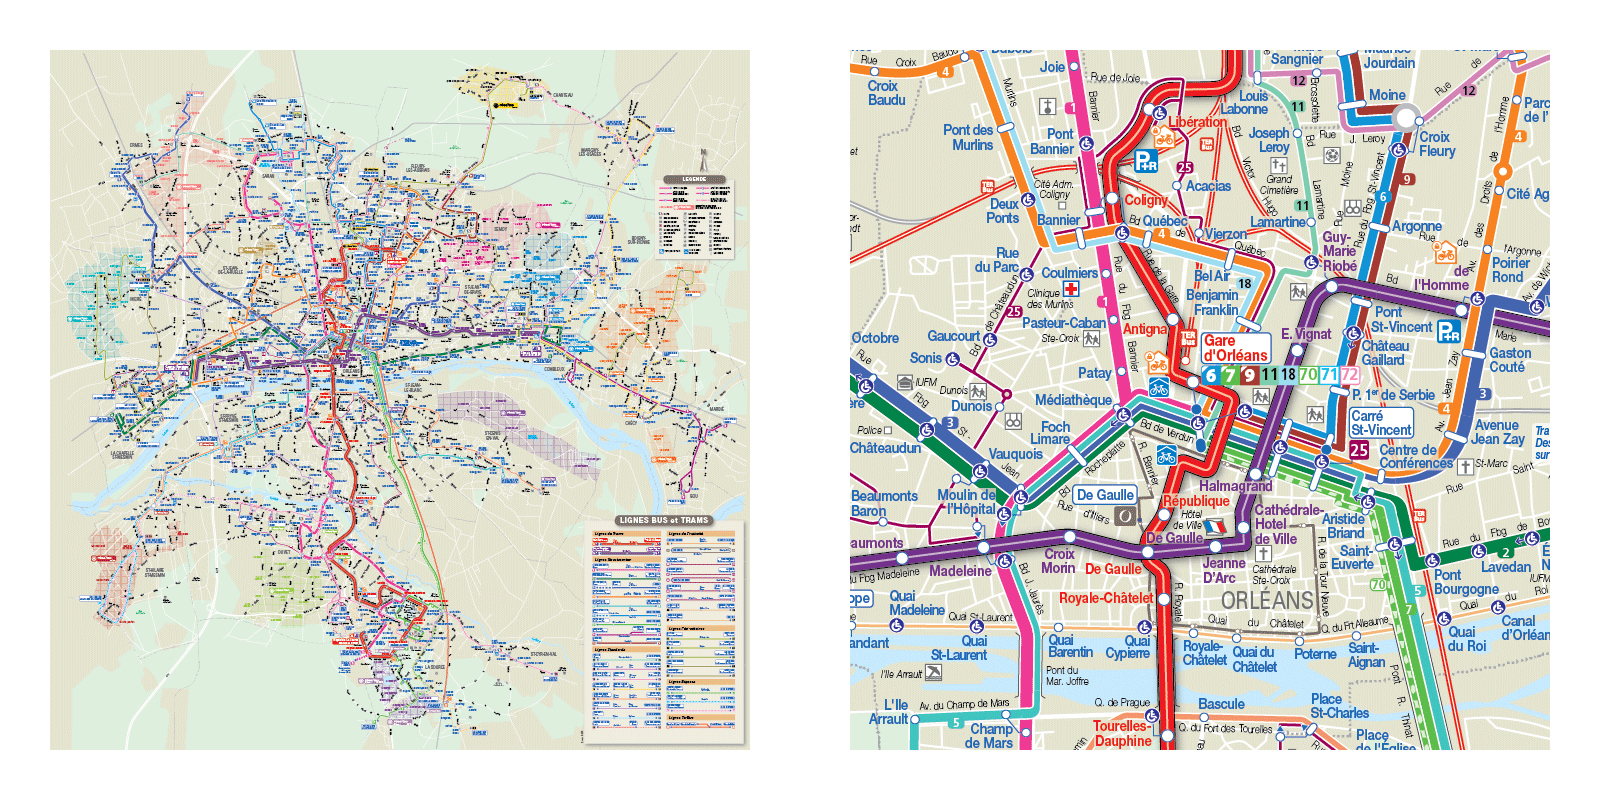 European Bus Maps Jug Cerovic Architect